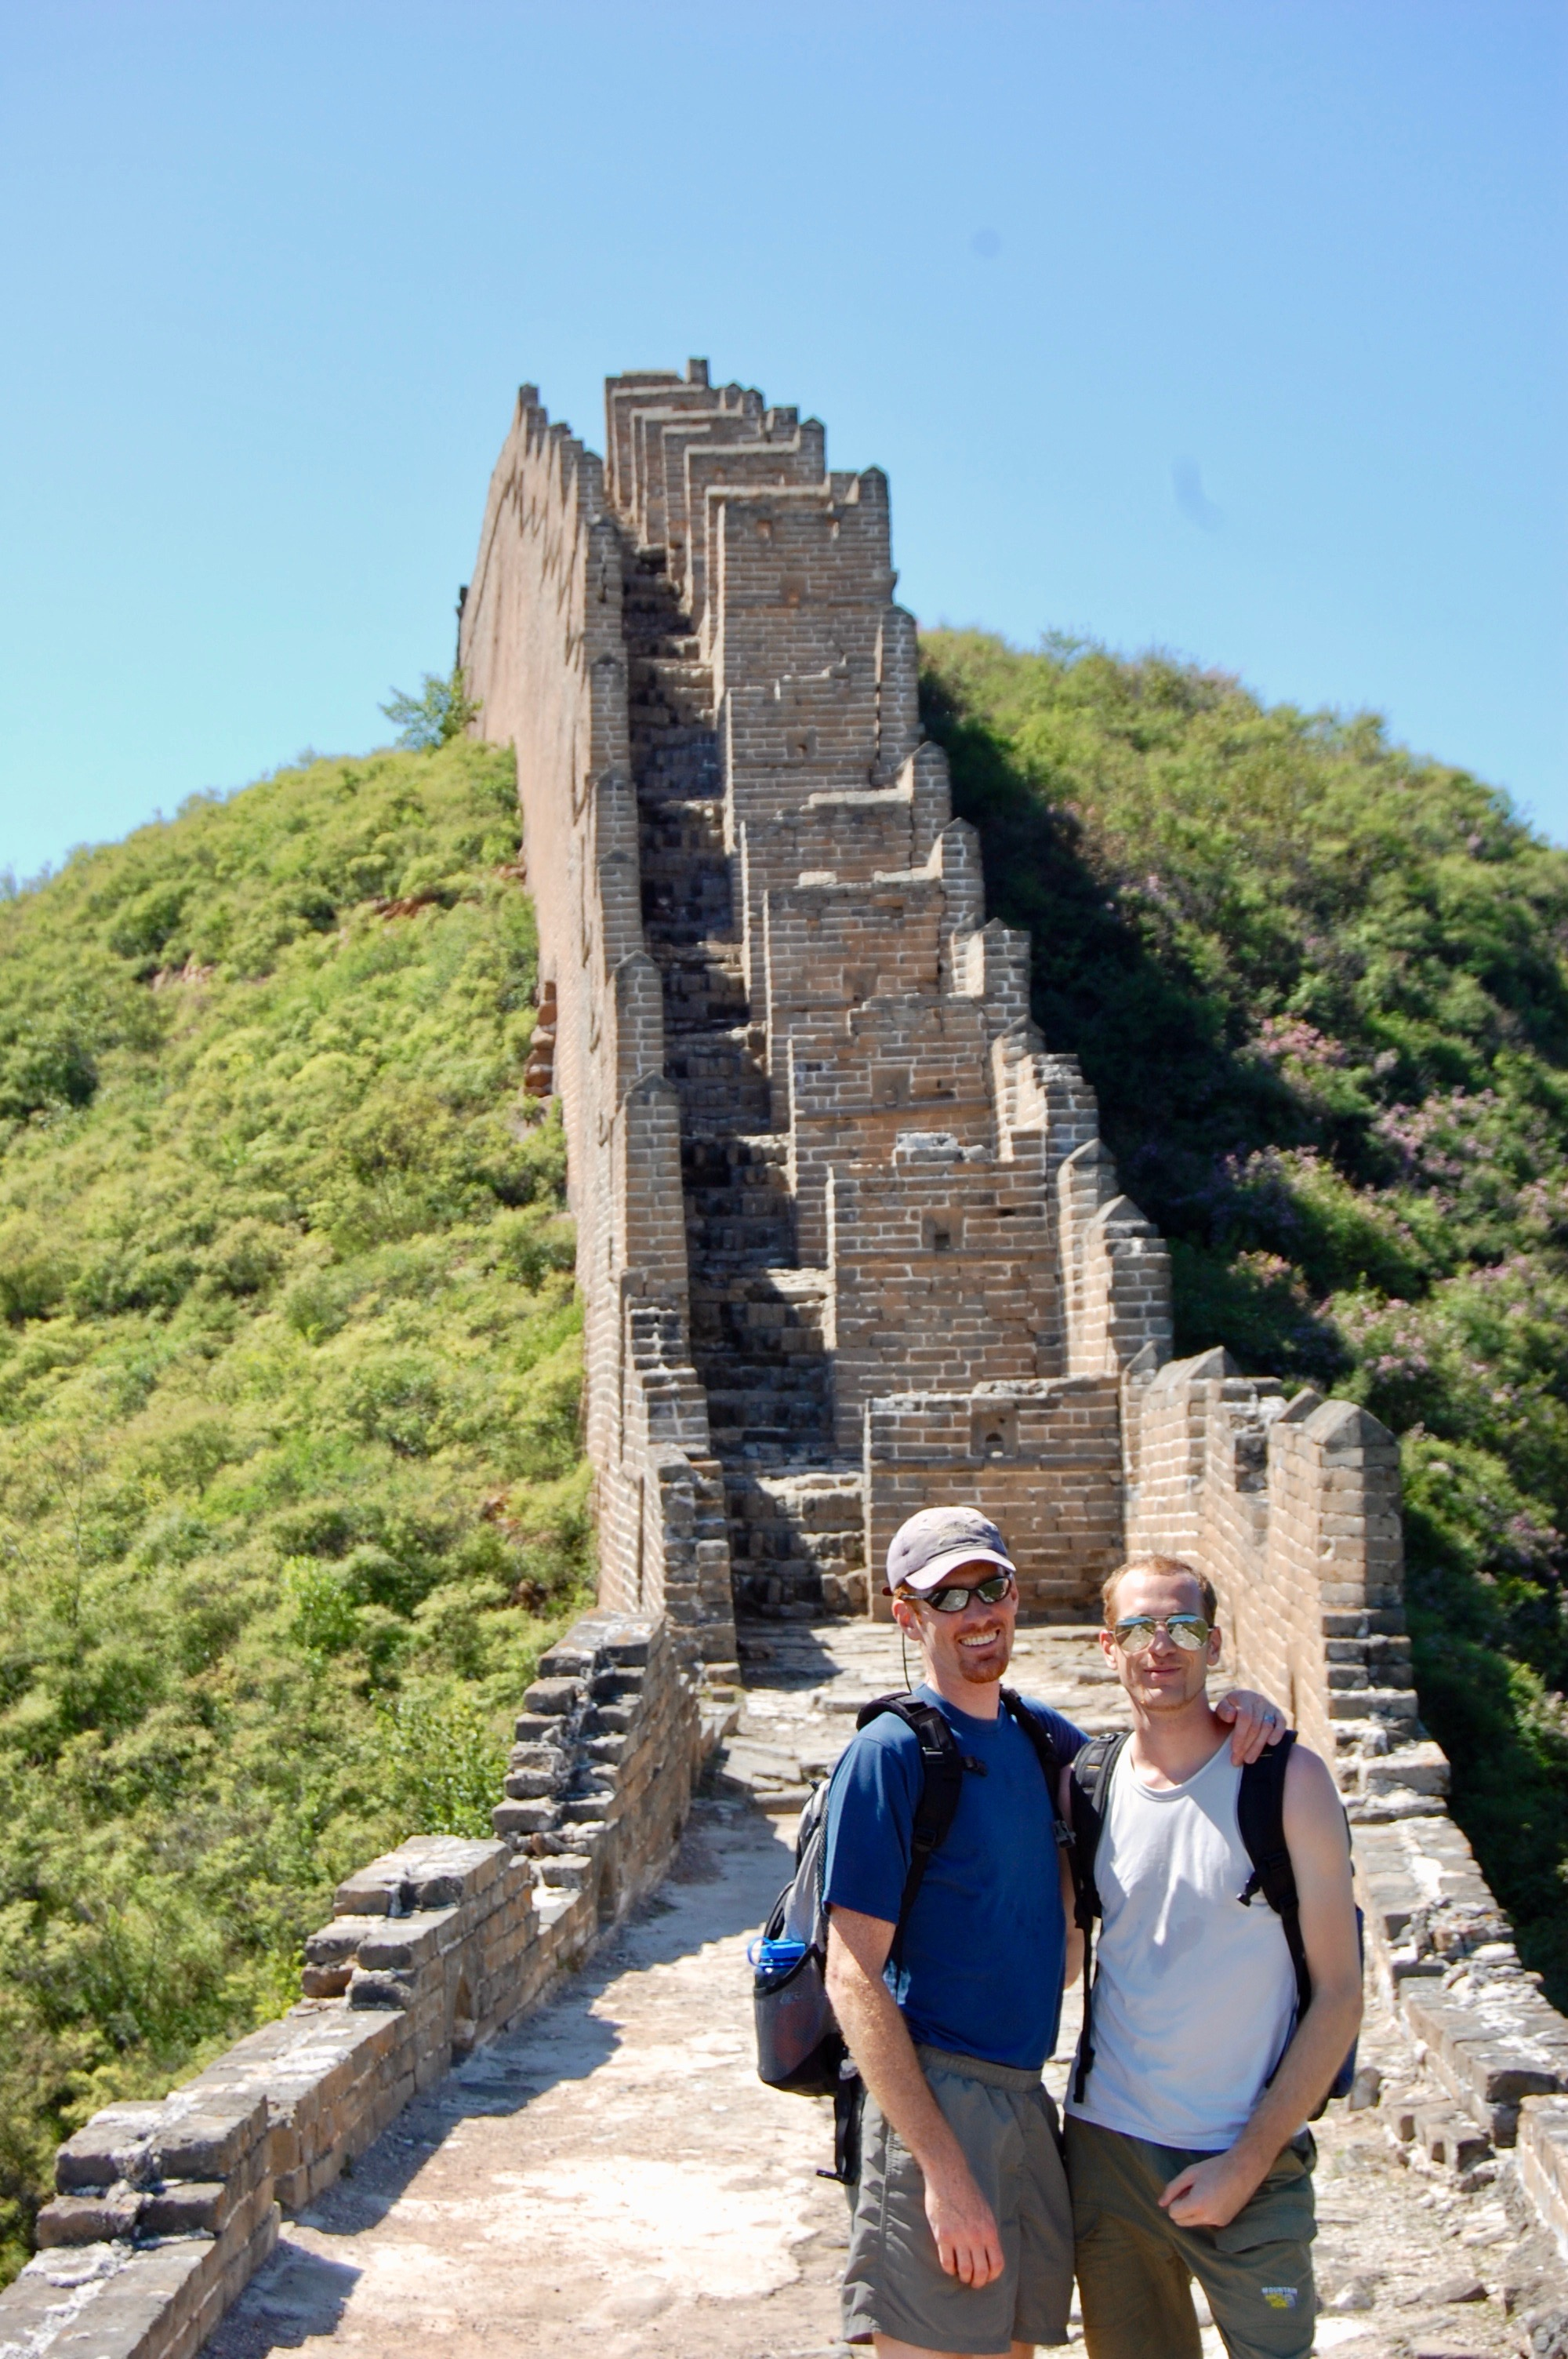 Hiking the Great Wall from Jinshanling to Simatai with my brother (Beijing, China)  Photo credit: Callie McMahon